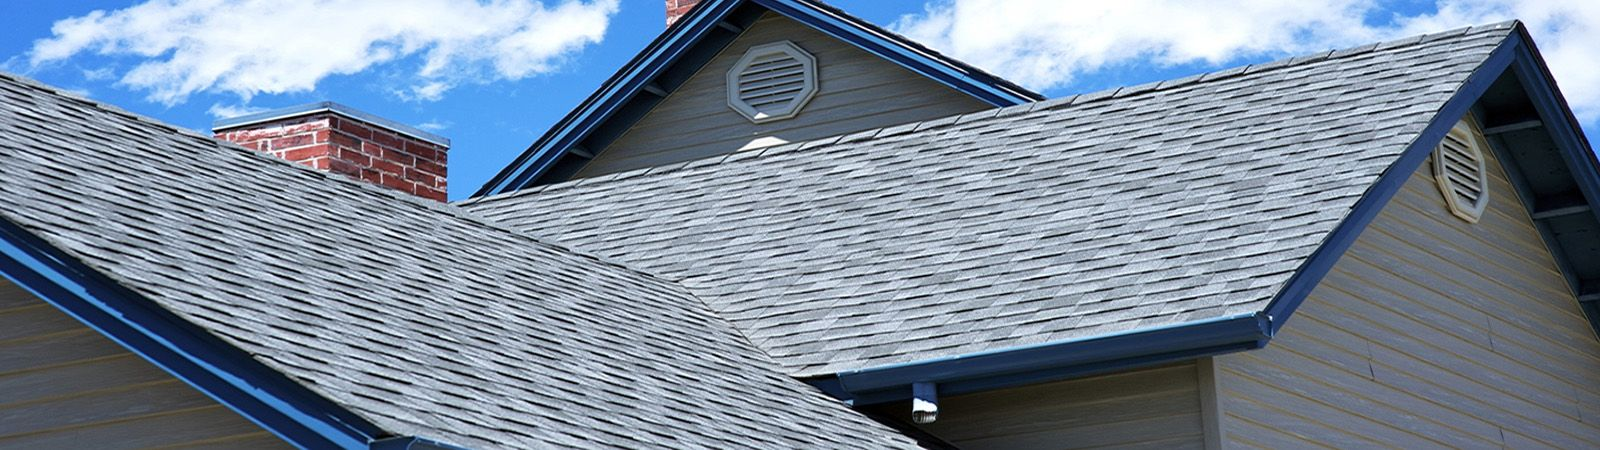 Your Neighborhoodz Is One Of The Best Roof Repair Contractors In San Antonio  Texas Which Provides